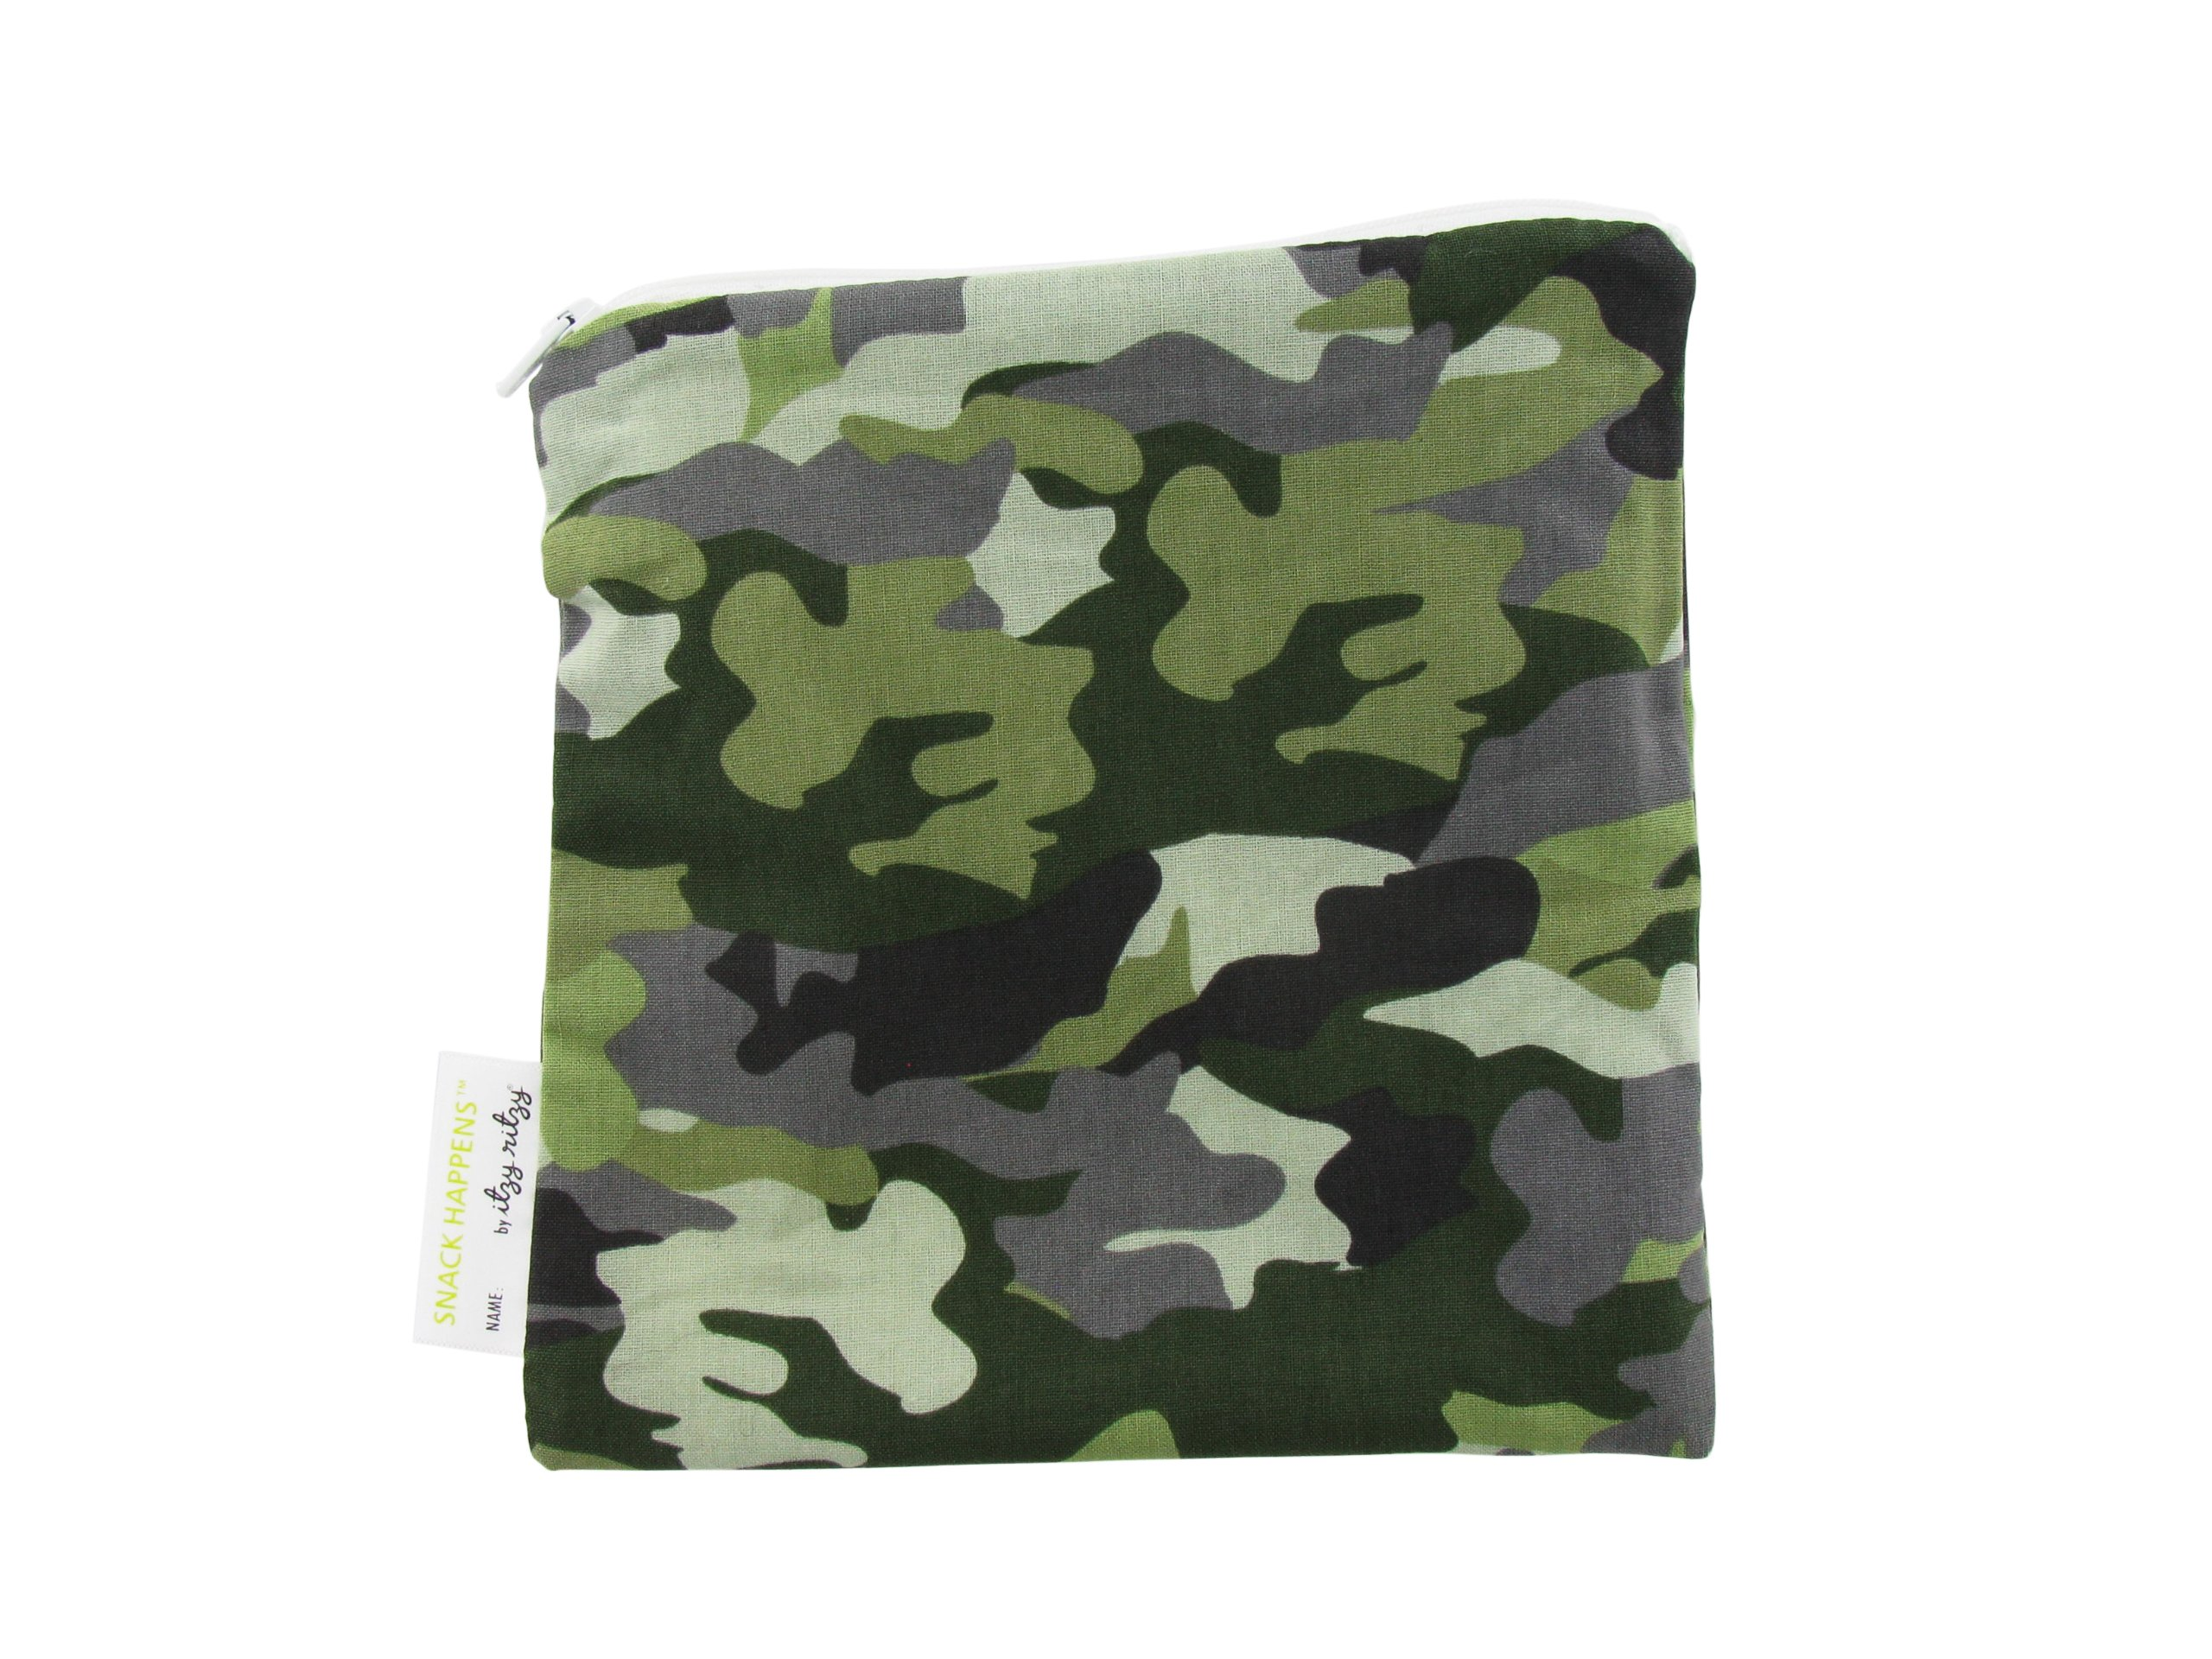 Itzy Ritzy Snack Happens Reusable Snack and Everything Bag, Camo, Regular by Itzy Ritzy